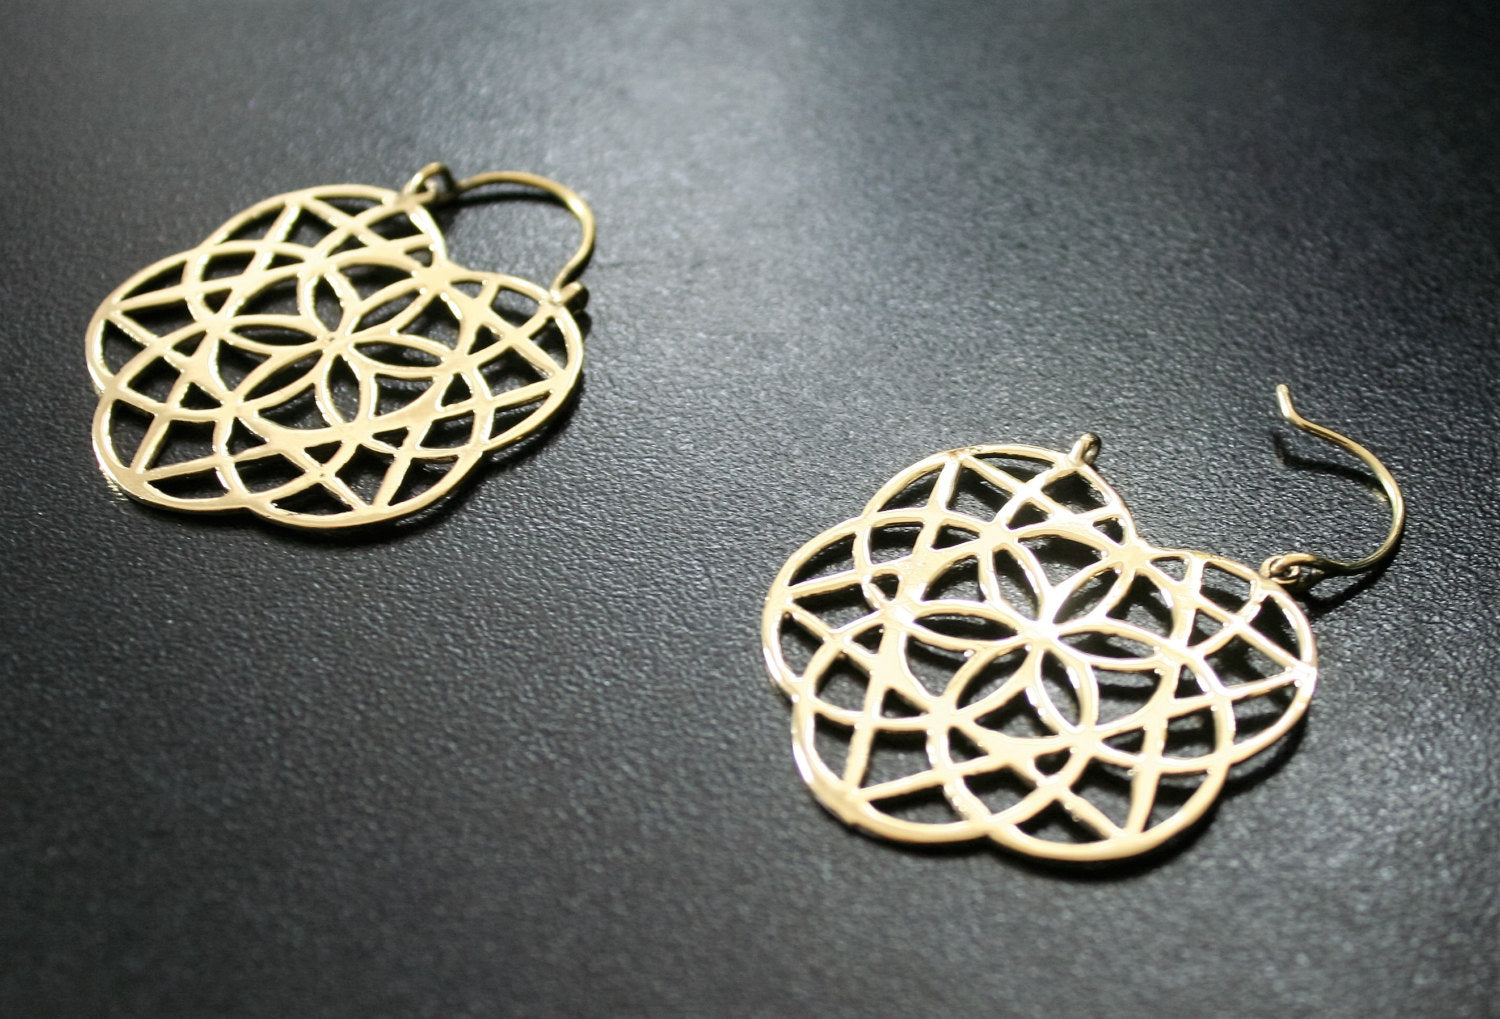 SEED OF LIFE Brass Earrings - Mandala Earrings, Psy, Boho Earrings, Tribal Brass Earrings, Gypsy Bohemian Earrings, Sacred Geometry Earrings